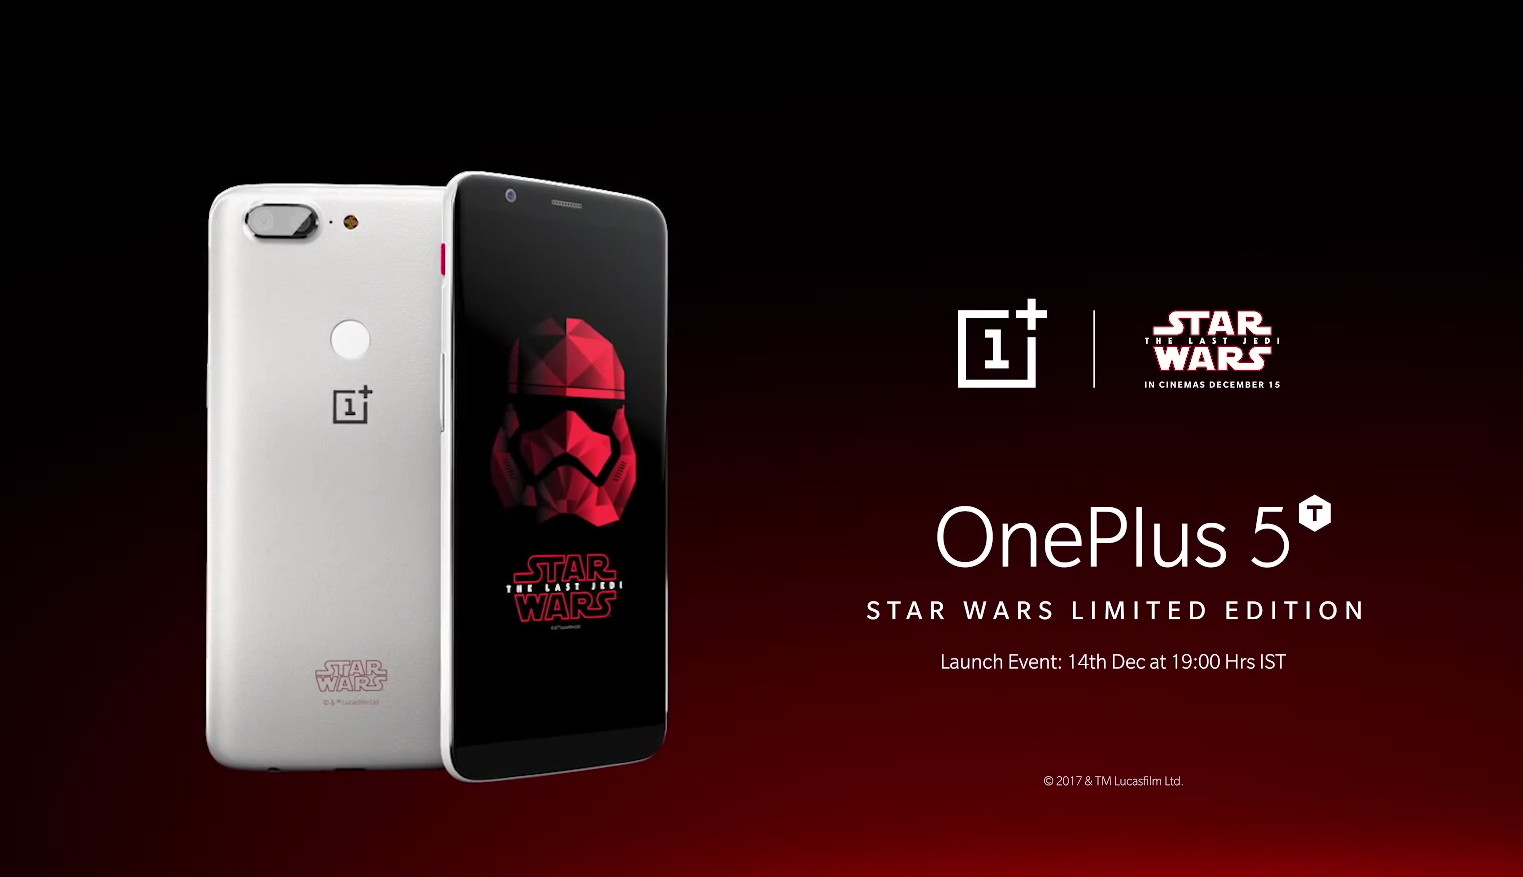 OnePlus announces special 5T Star War Limited Edition at Comic Con India